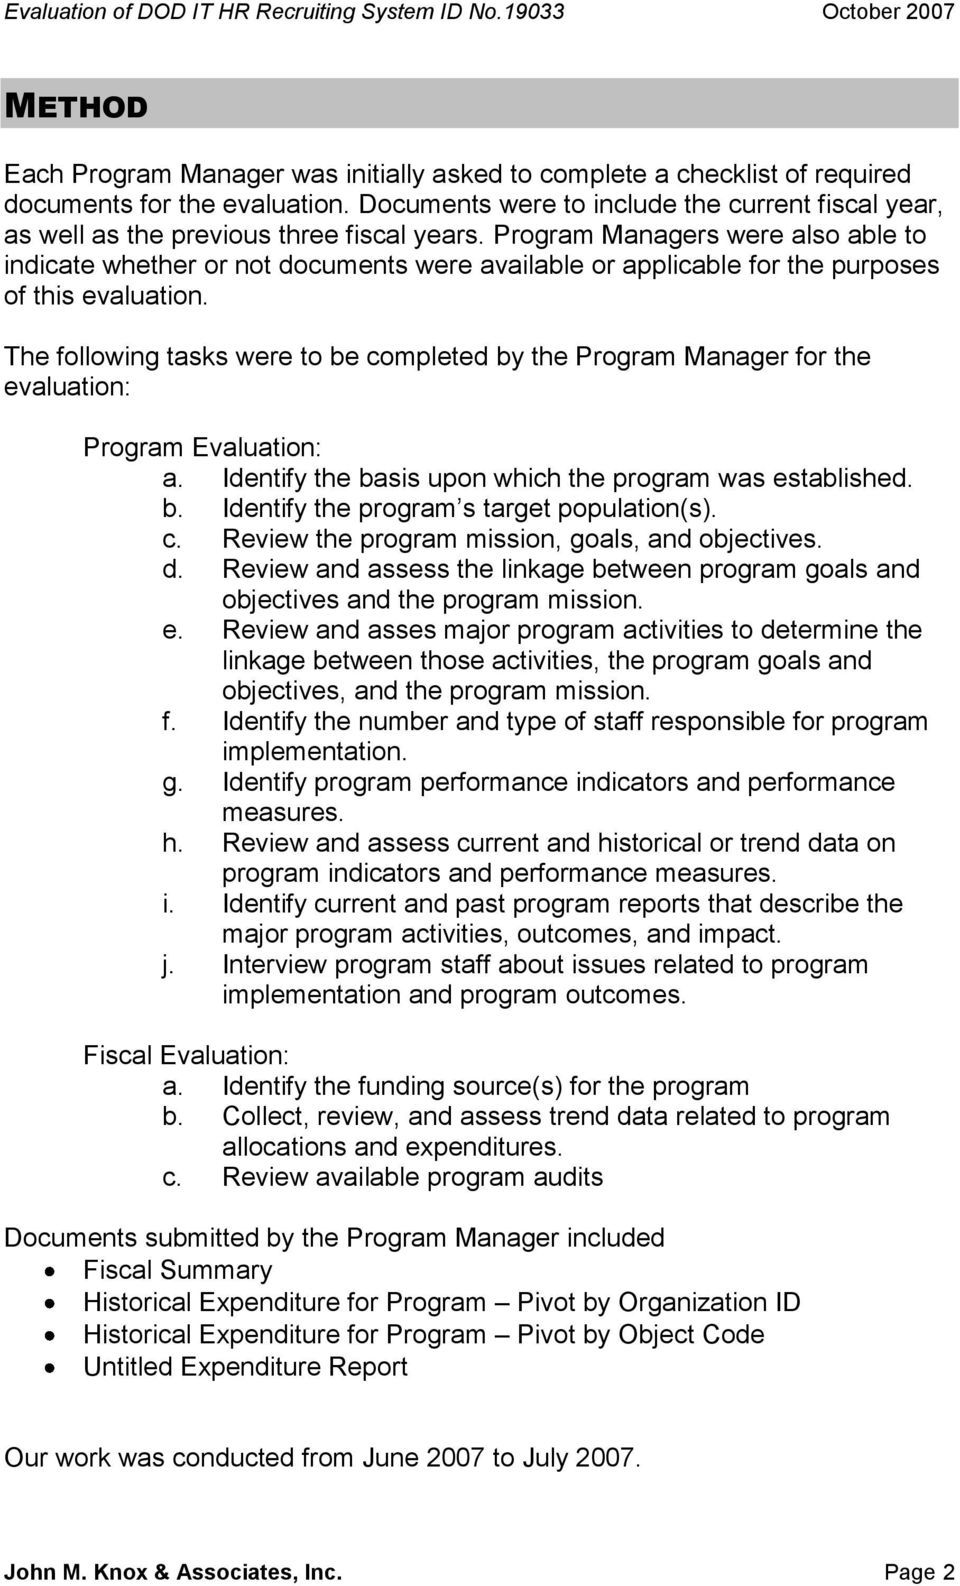 Program Managers were also able to indicate whether or not documents were available or applicable for the purposes of this evaluation.